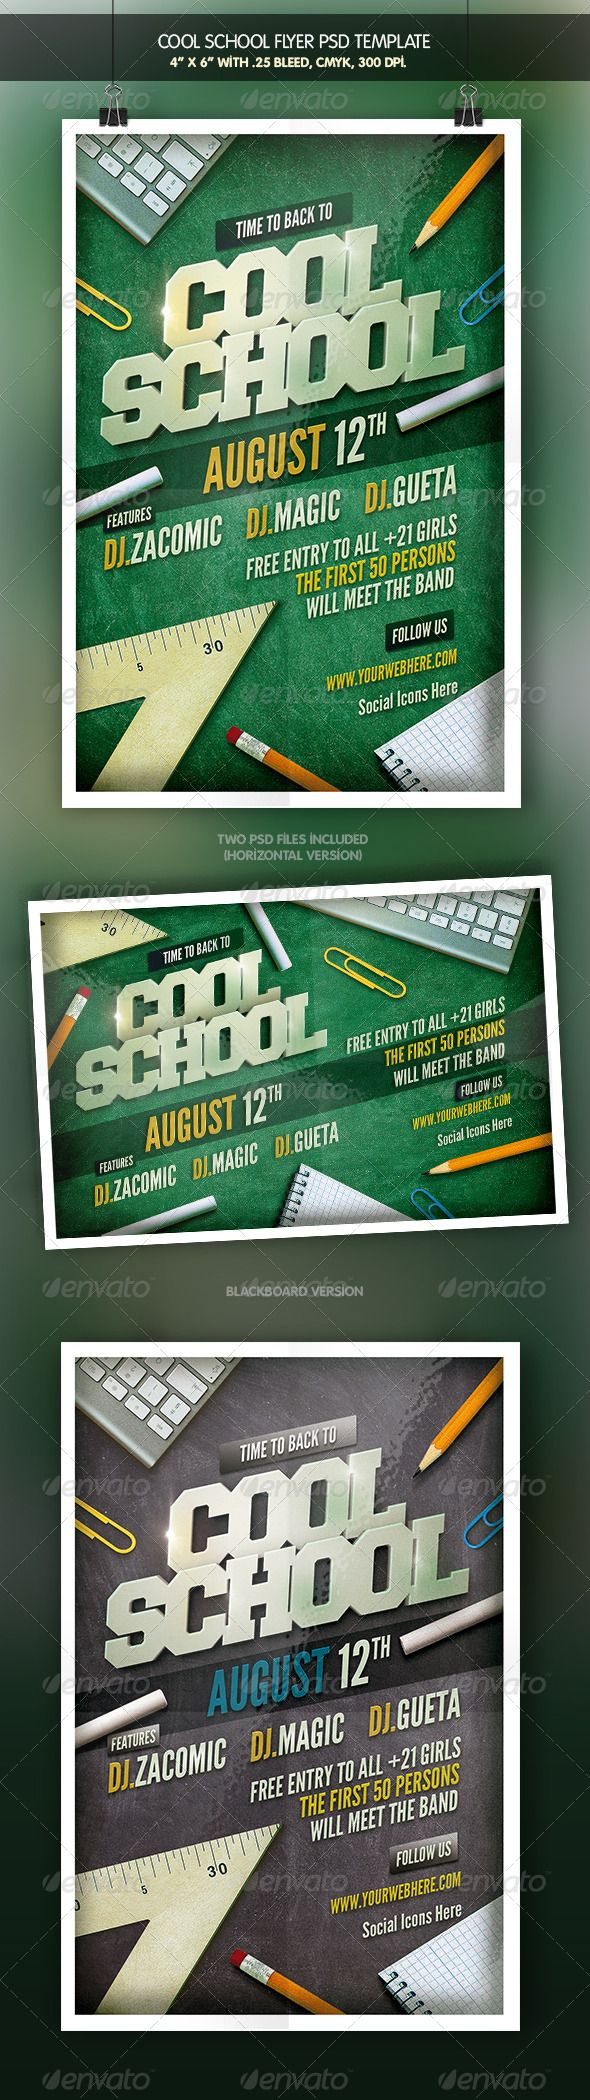 Cool School | Back to School Flyer — Photoshop PSD #no model #back to school party • Available here → https://graphicriver.net/item/cool-school-back-to-school-flyer/8467768?ref=pxcr